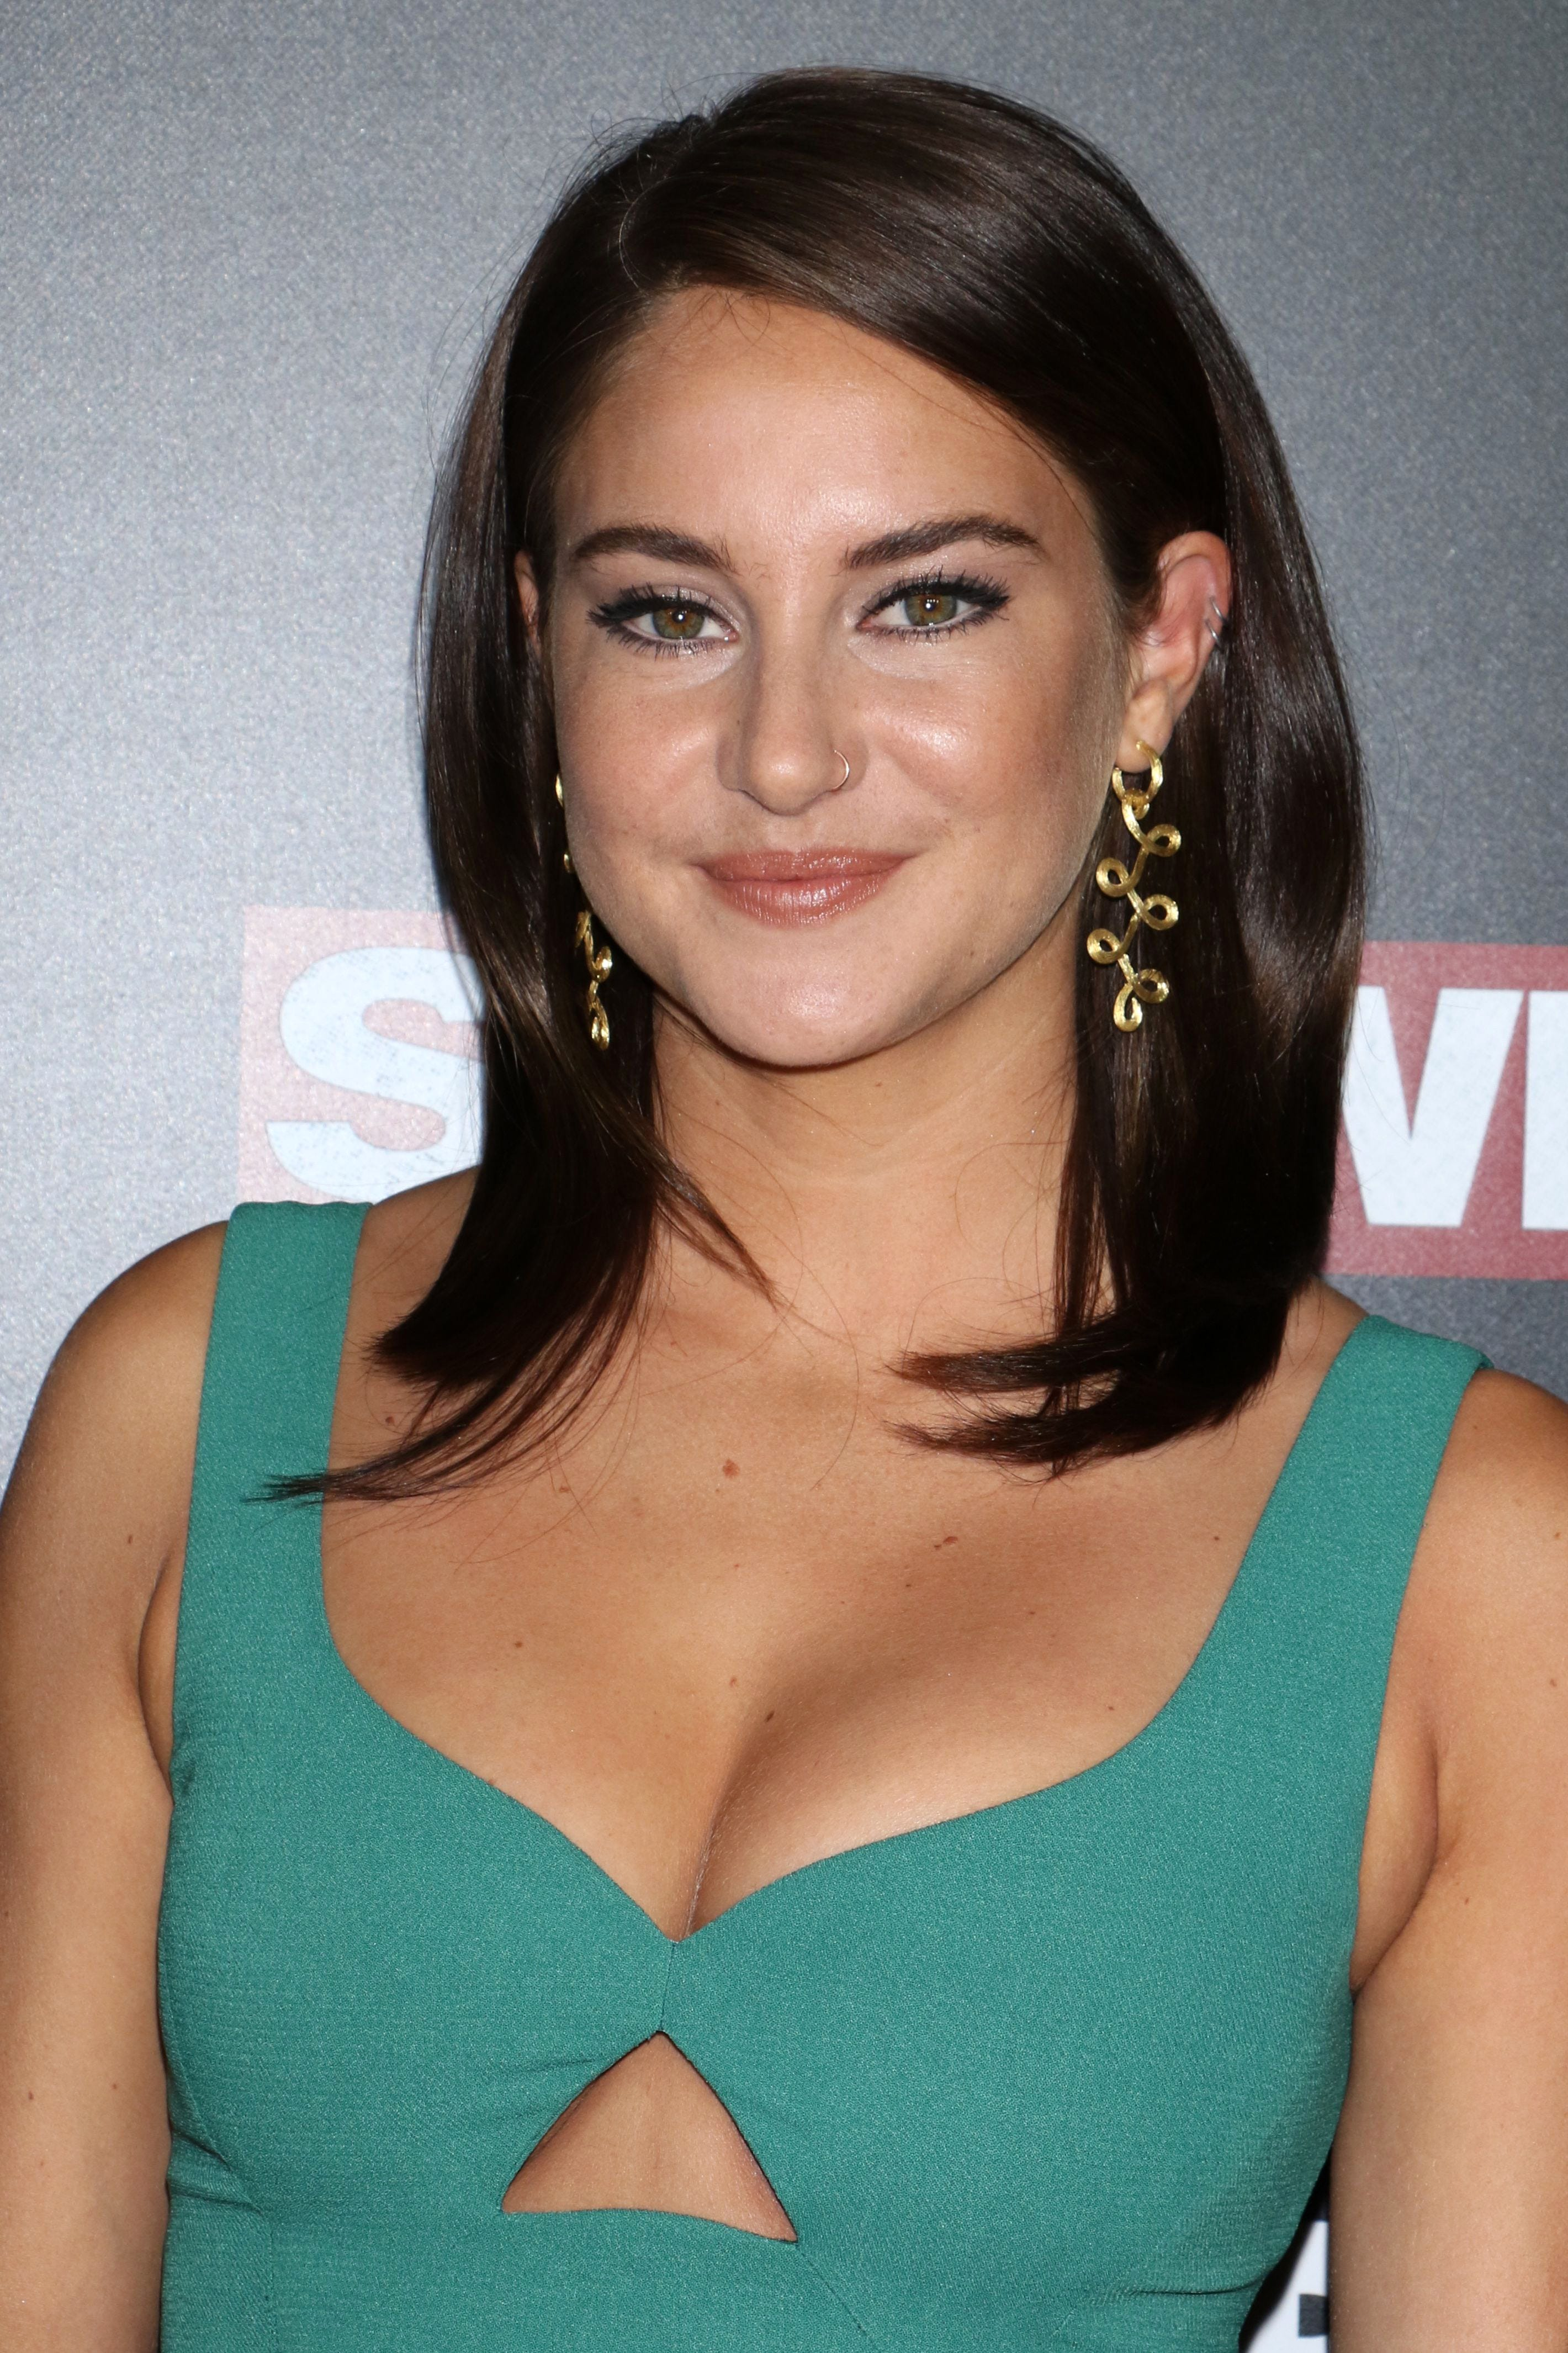 Pic Shailene Woodley naked (63 photos), Topless, Hot, Selfie, butt 2006